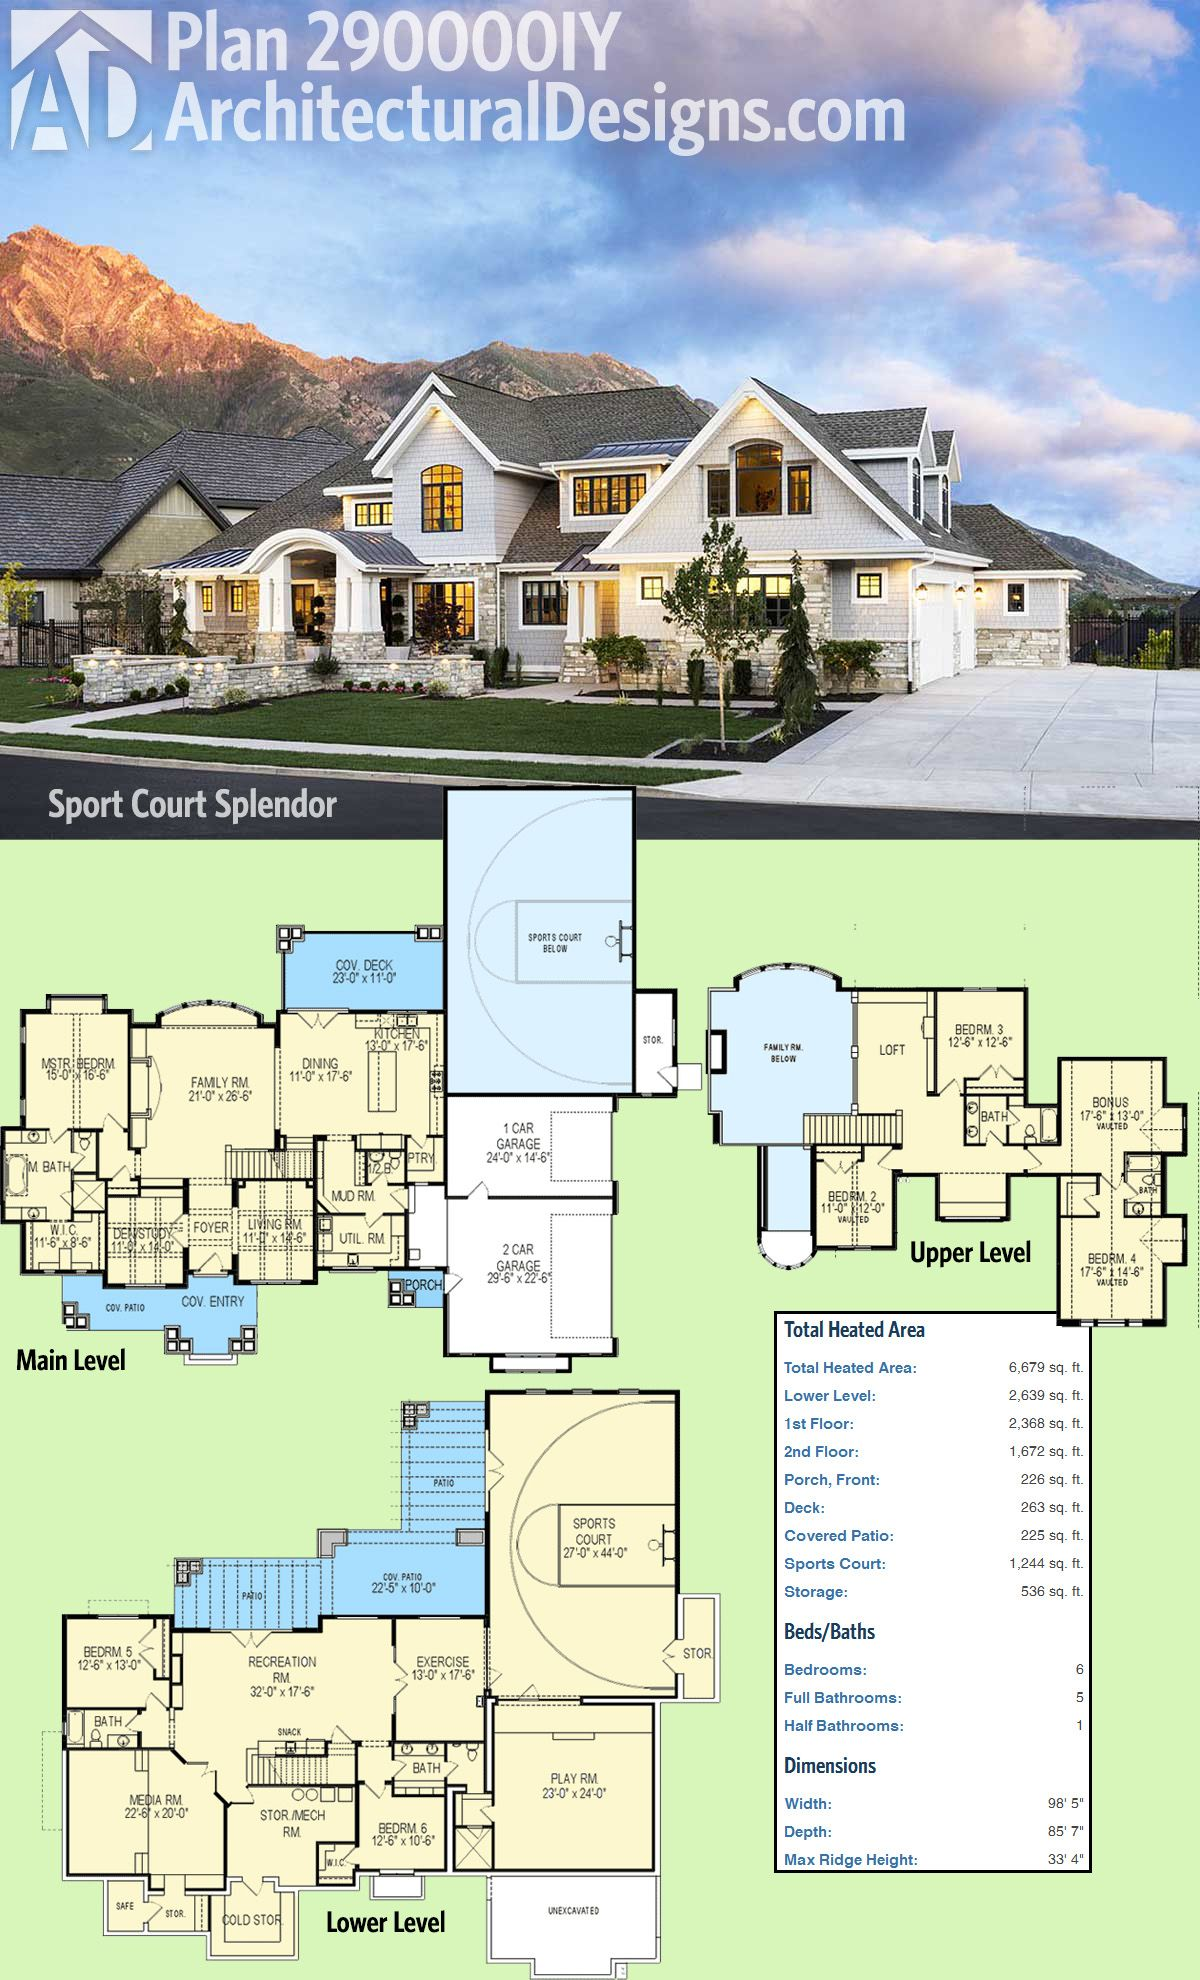 stunning villa plan. Introducing Architectural Designs Luxury House Plan 290000IY  With a sport court in the lower level 290017IY Imagine The Views houses and